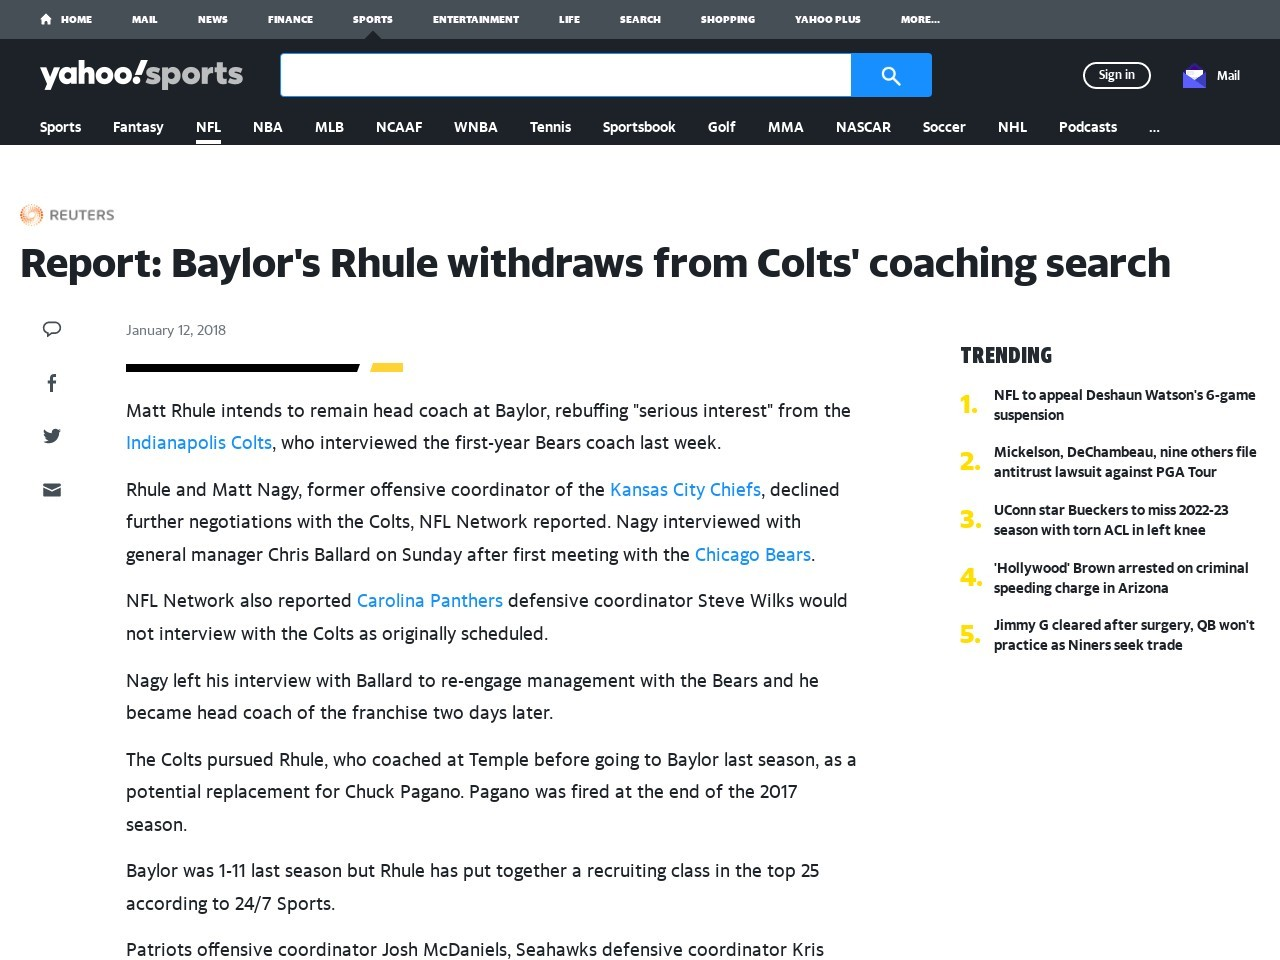 Report: Baylor's Rhule withdraws from Colts' coaching search